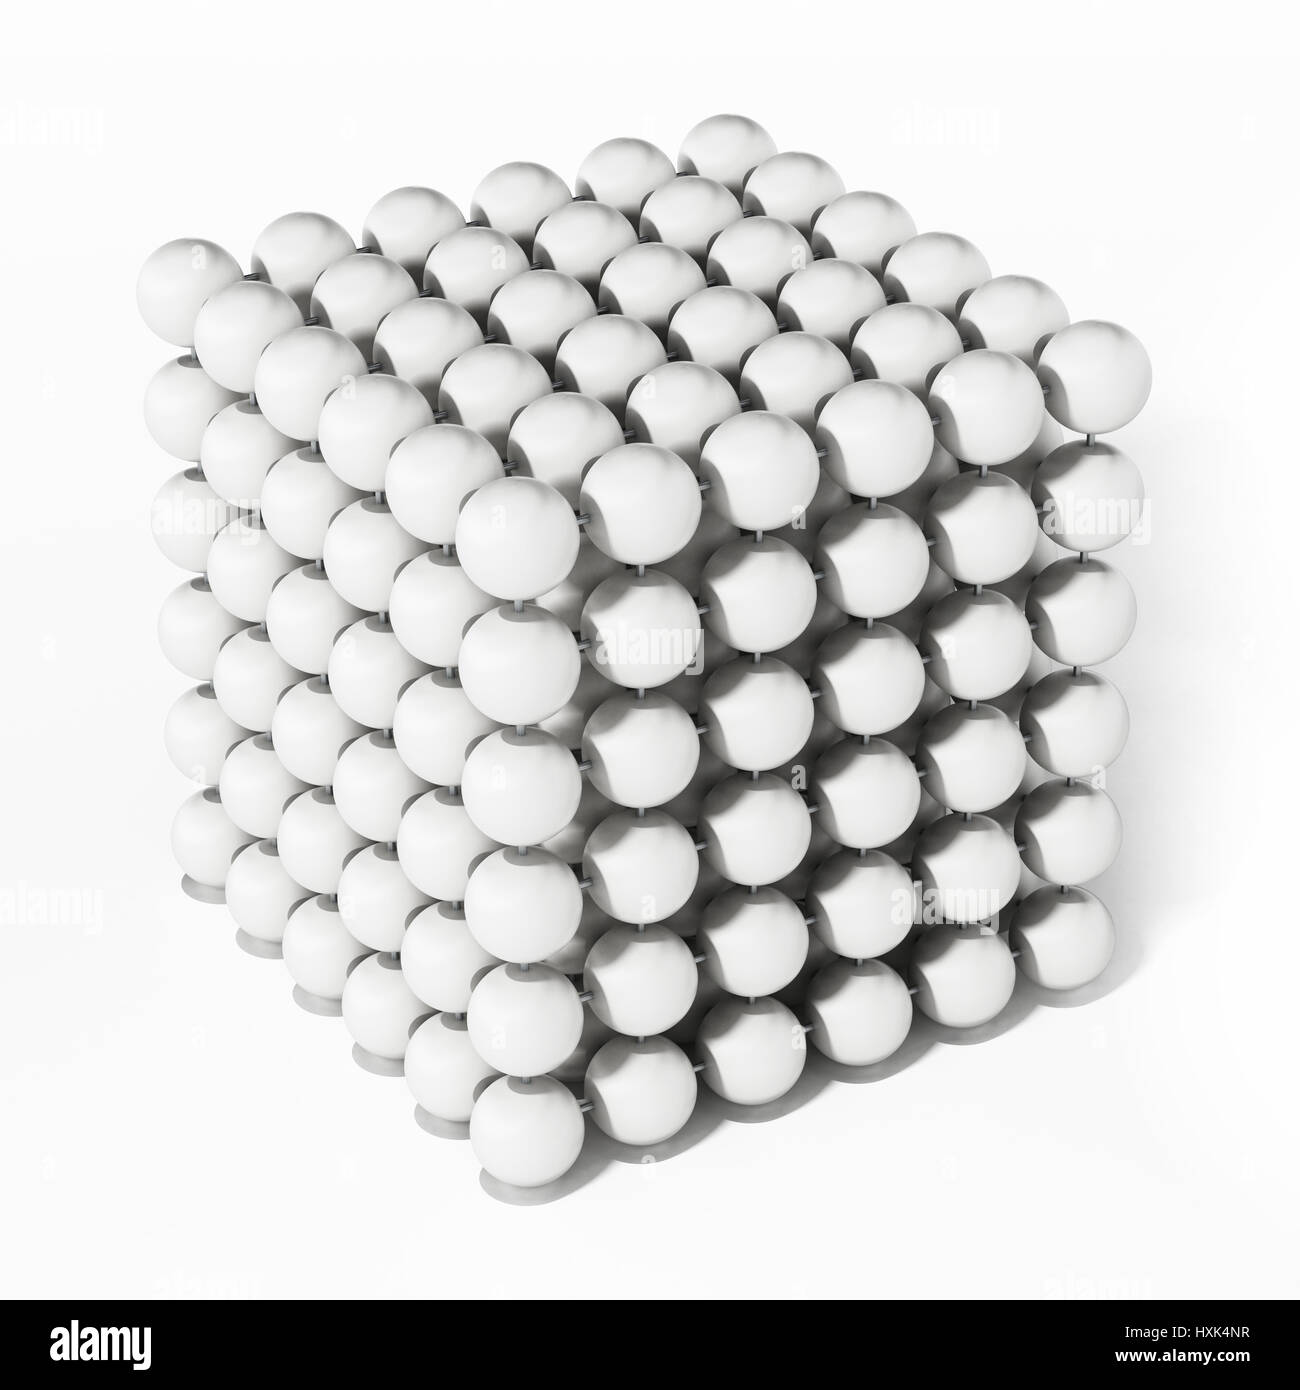 White spheres forming a cube shape. 3D illustration. - Stock Image